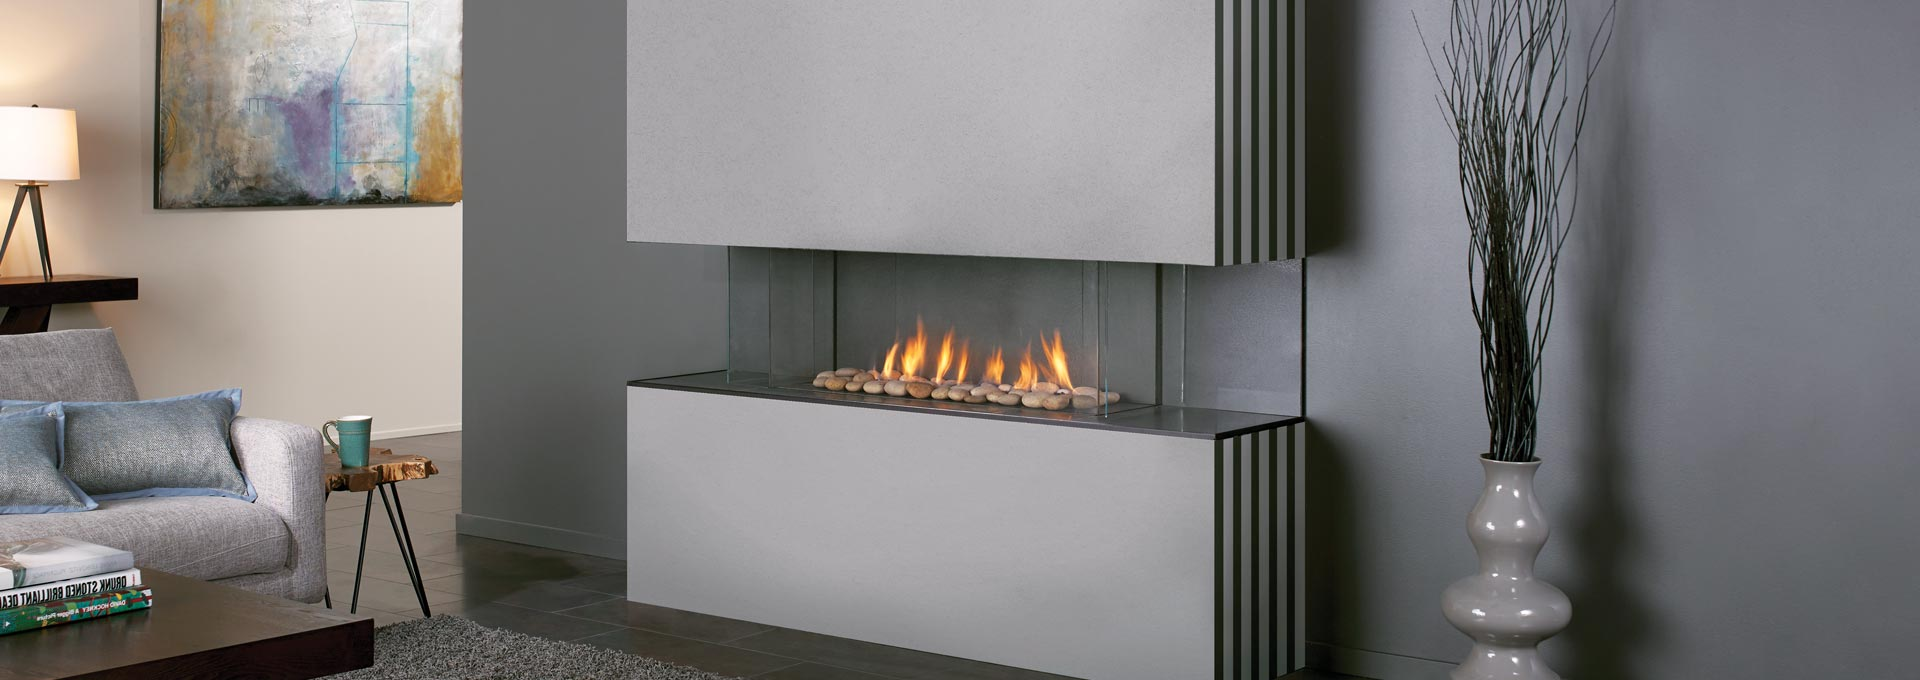 Experience Design Freedom with City Series Modern Gas Fireplaces